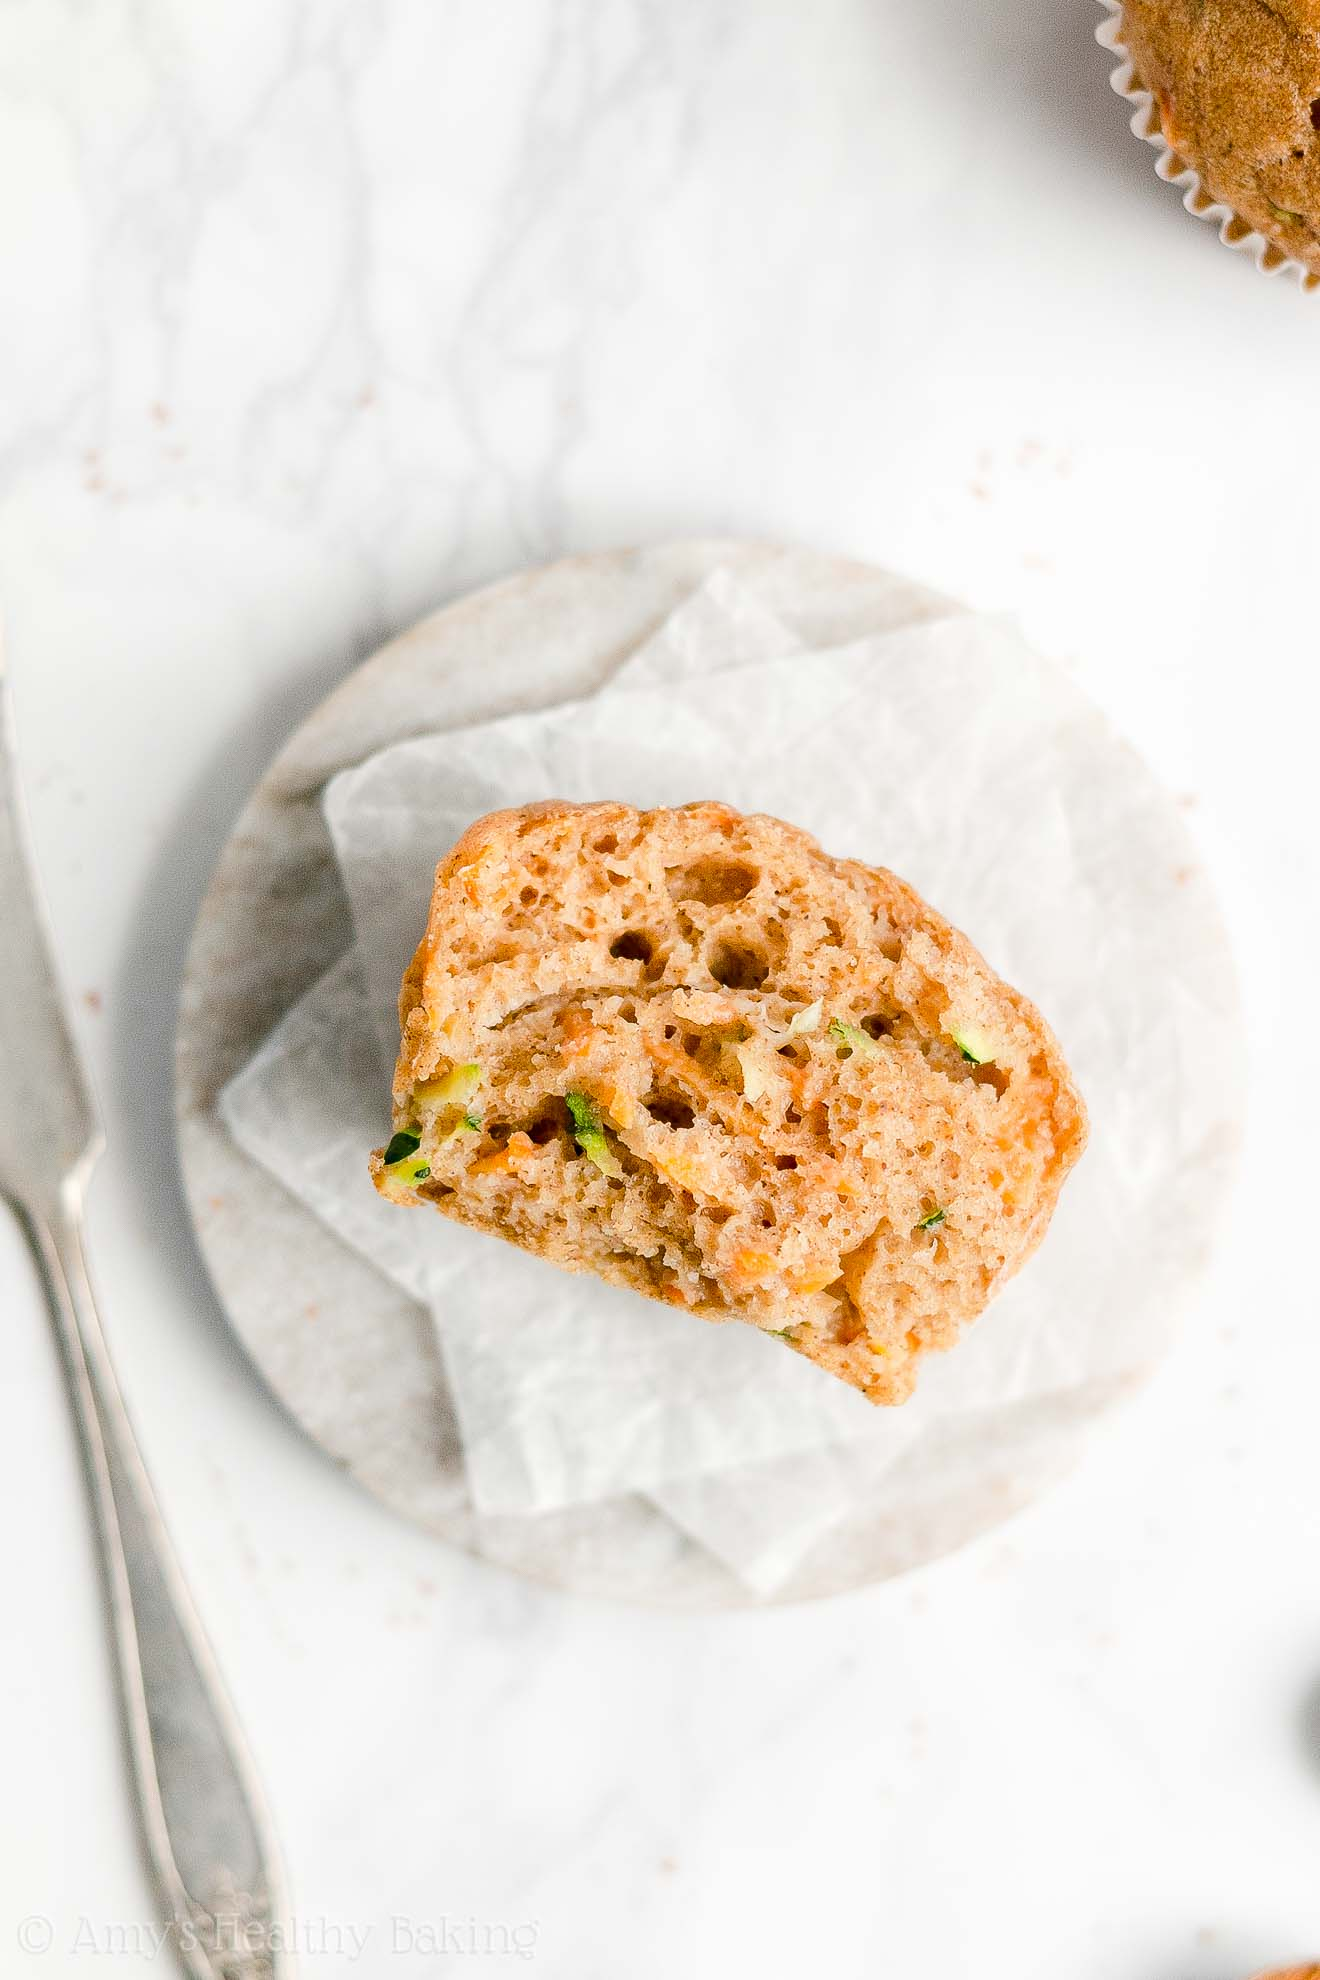 Easy Healthy Low Calorie Whole Wheat No Sugar Spiced Carrot Zucchini Muffins